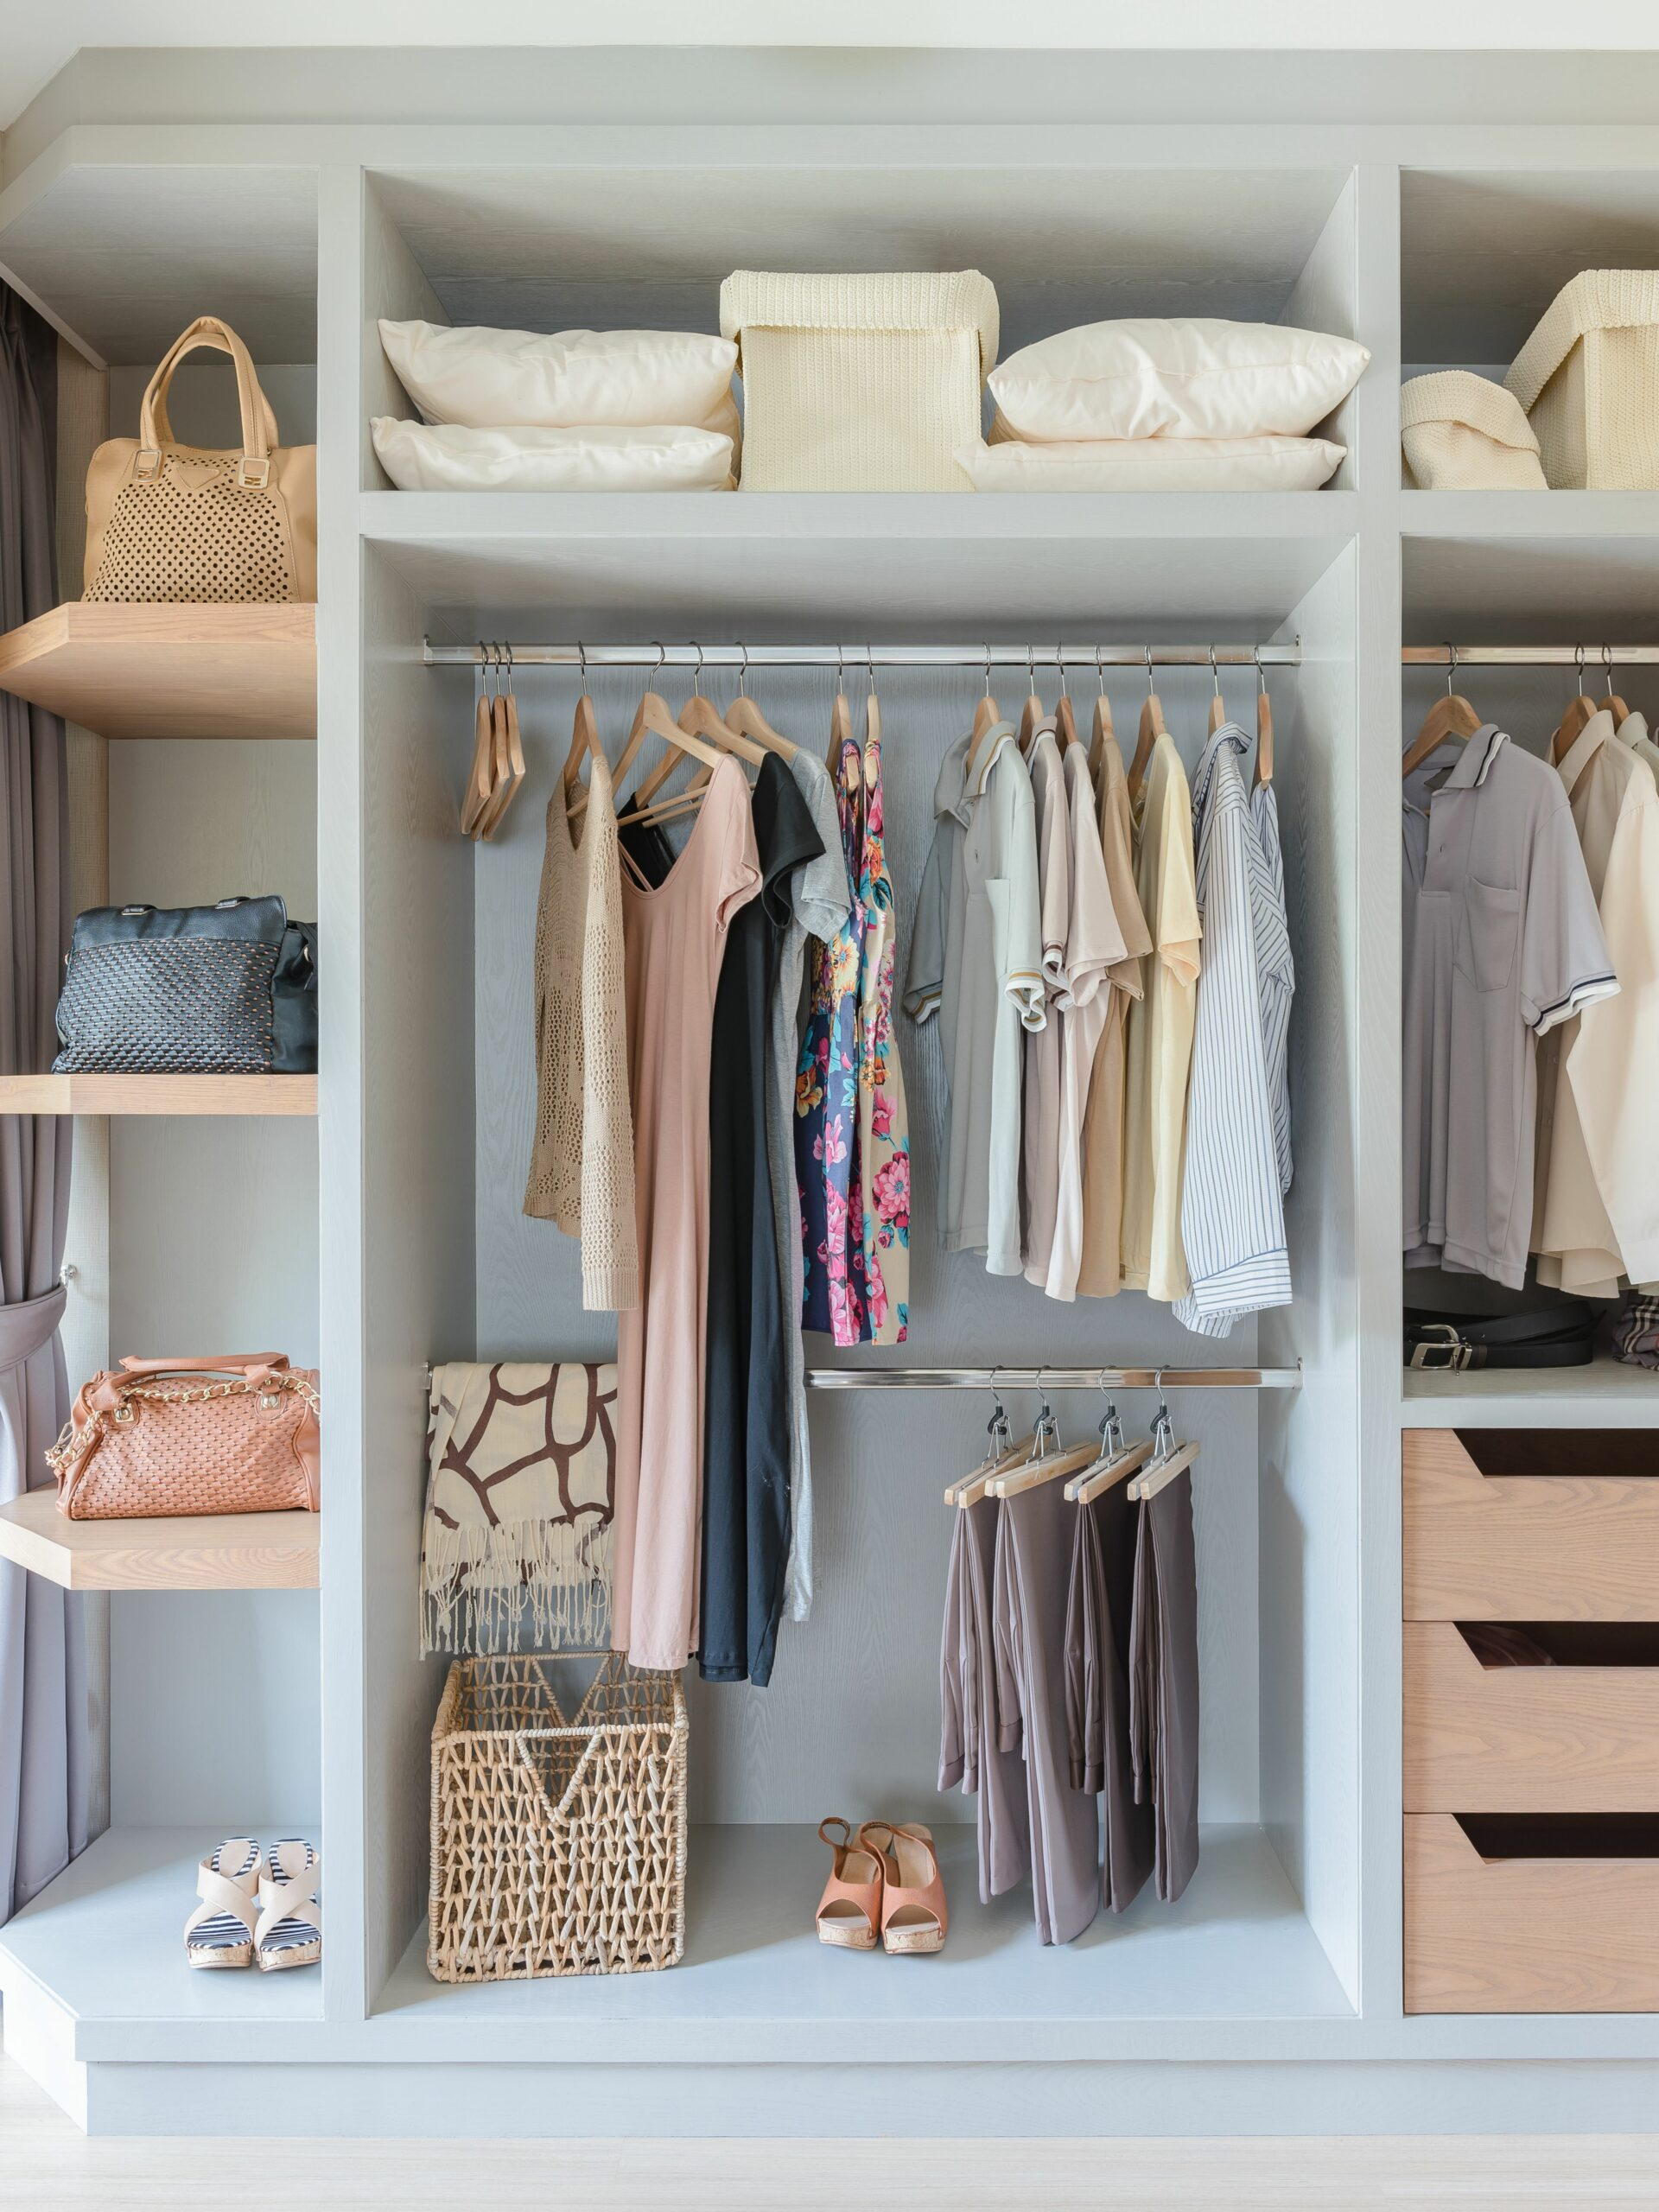 9 Best Closet Organization Ideas to Maximize Space and Style ..